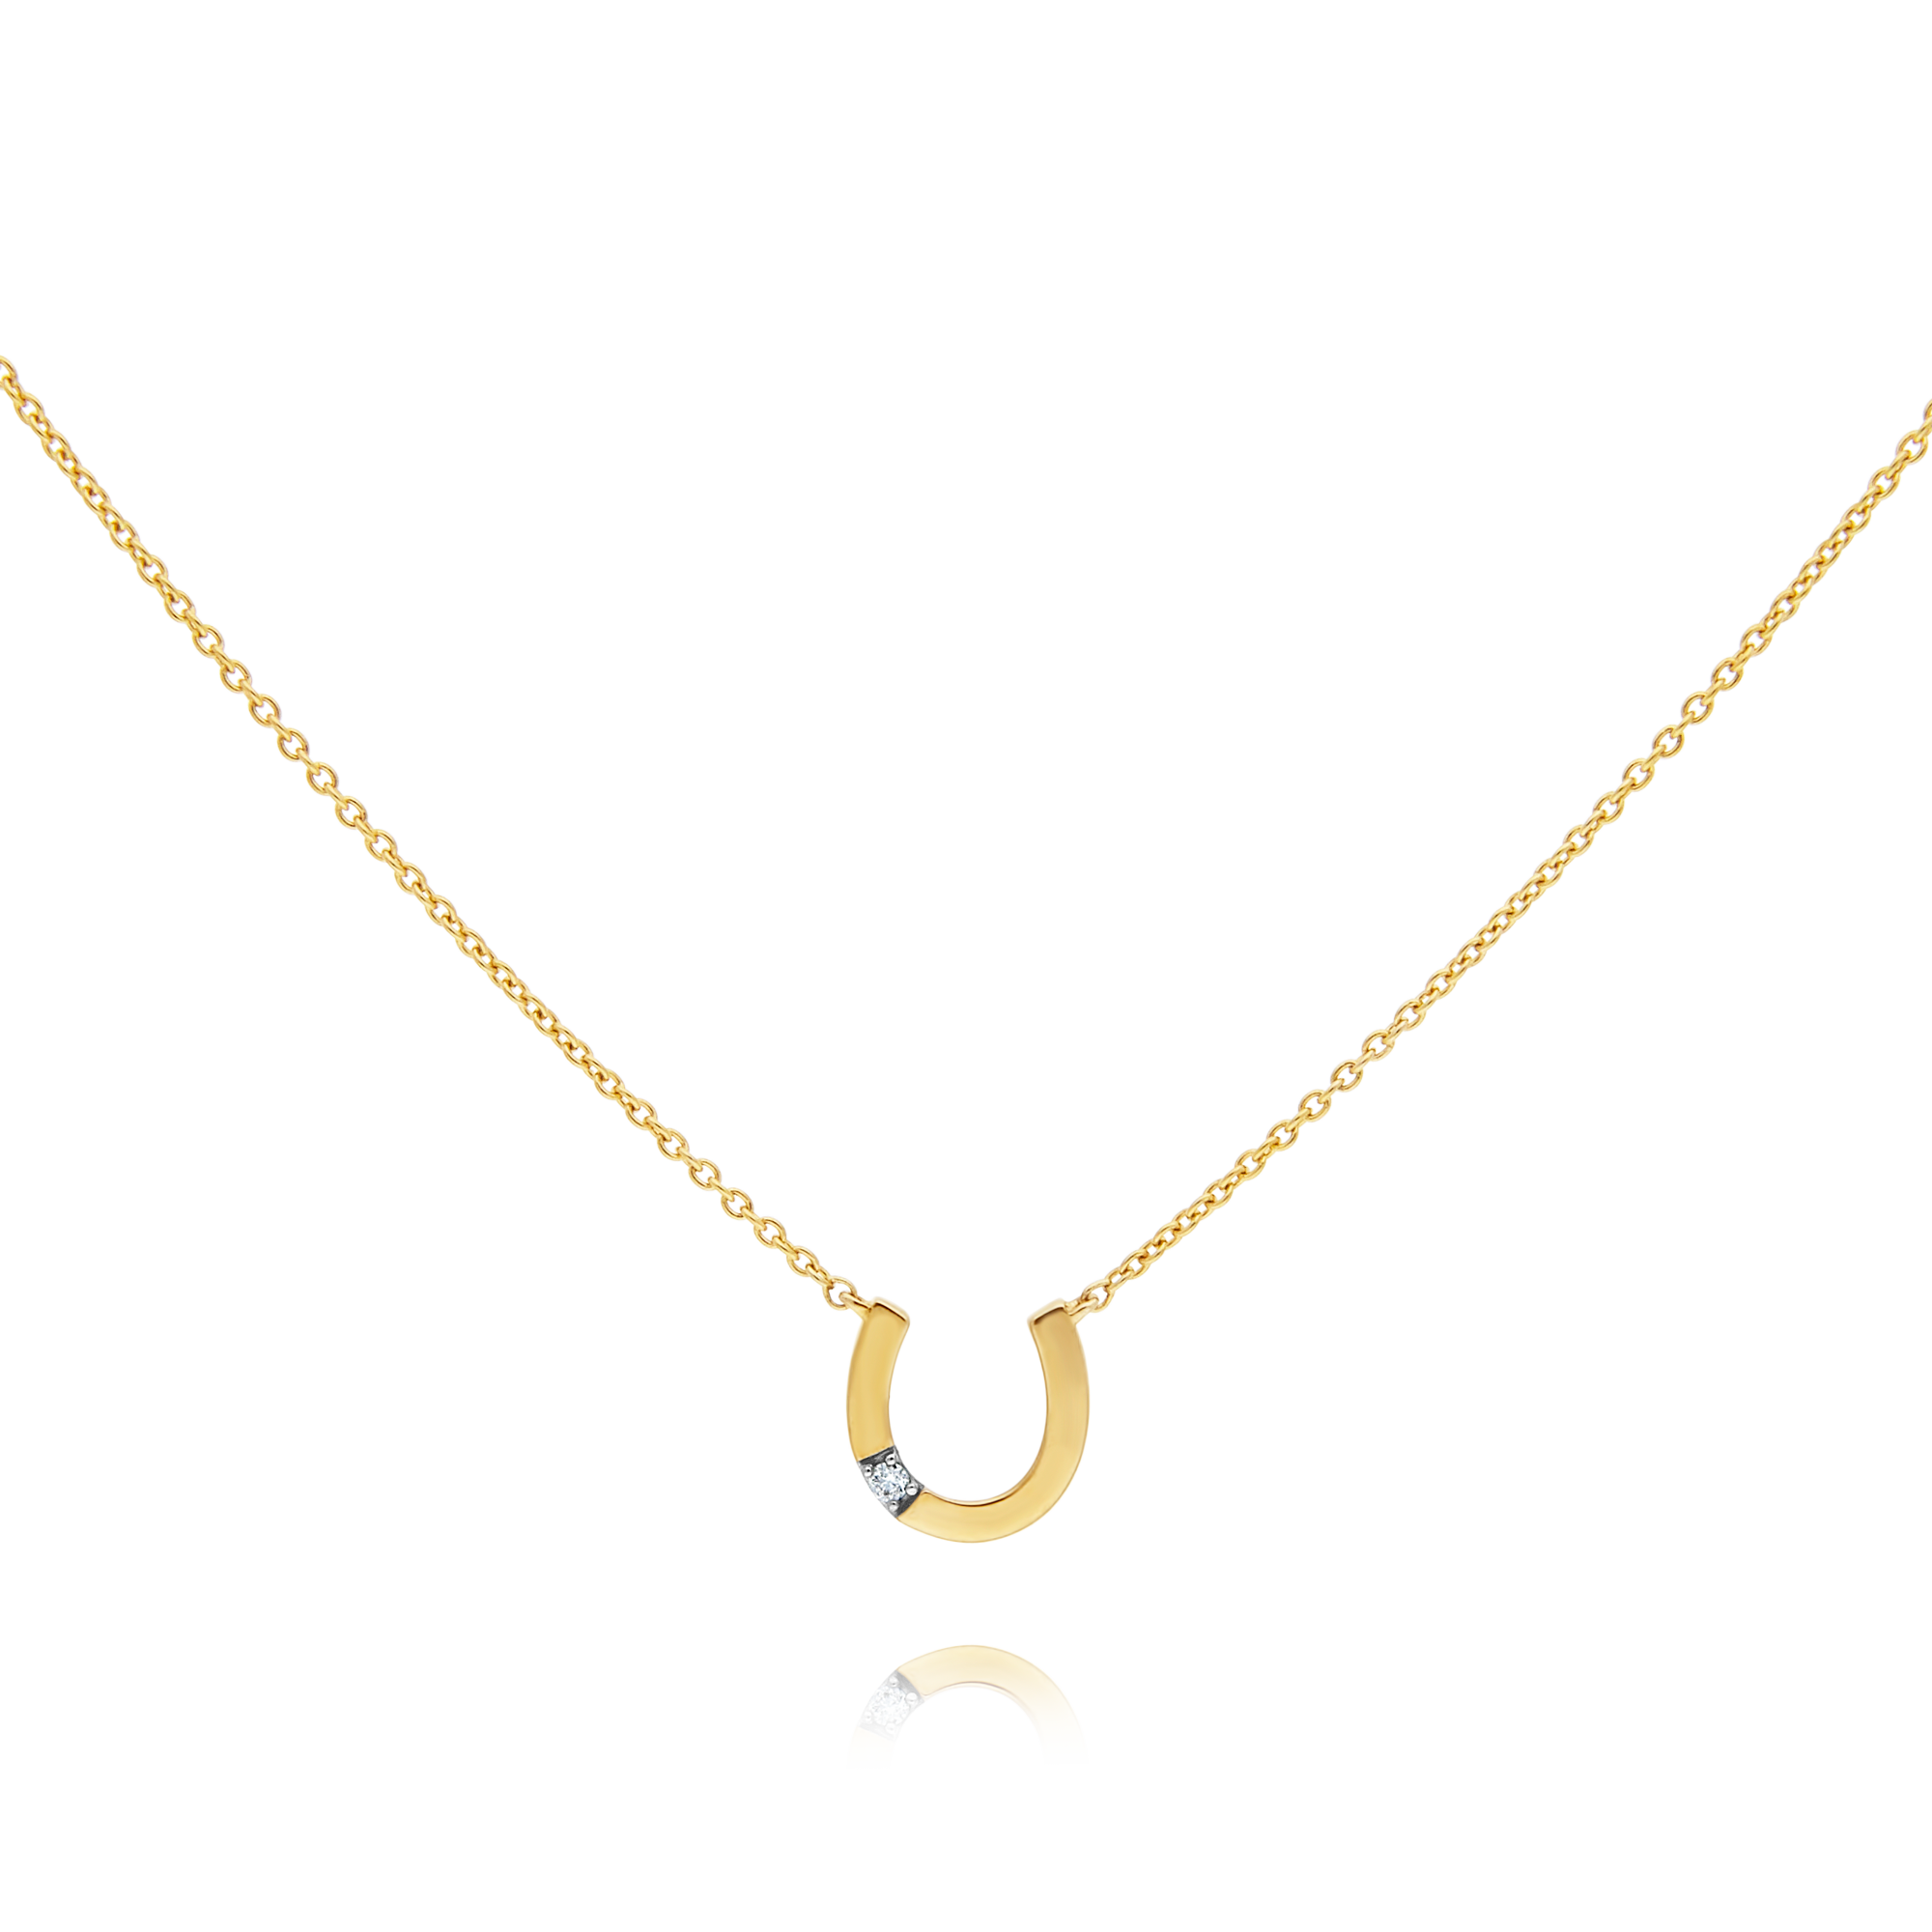 Gold and Diamond Horseshoe Pendant